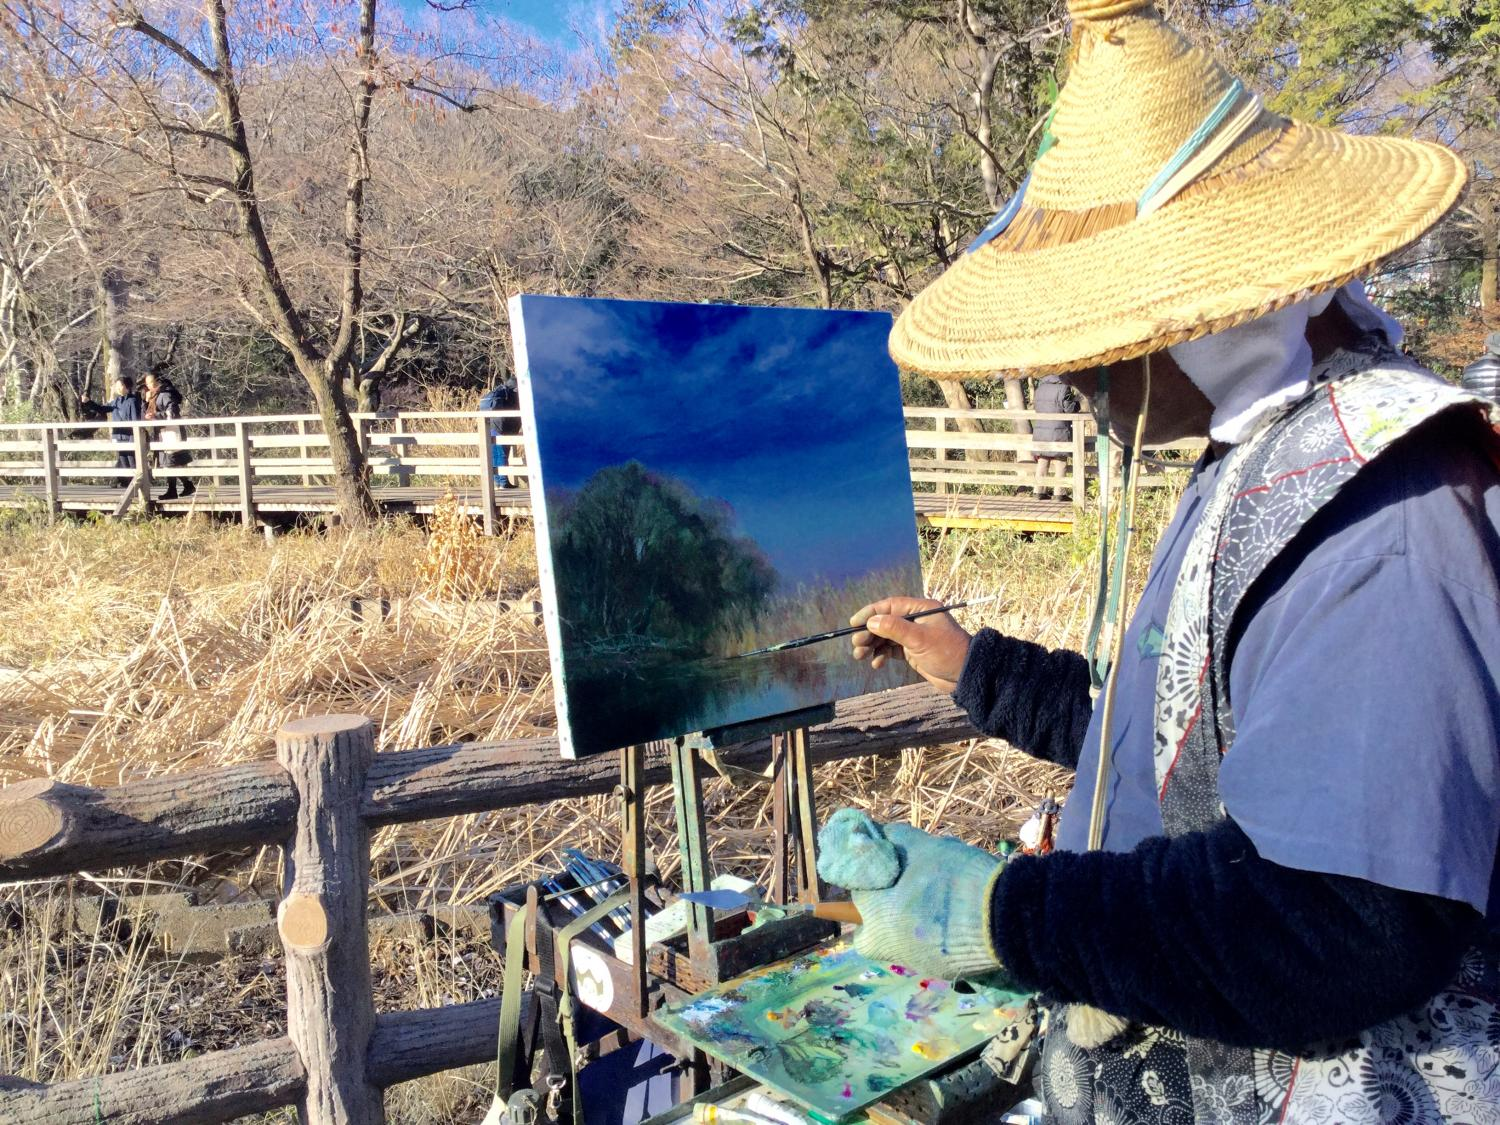 Painter image which loves Shakujii Park deeply